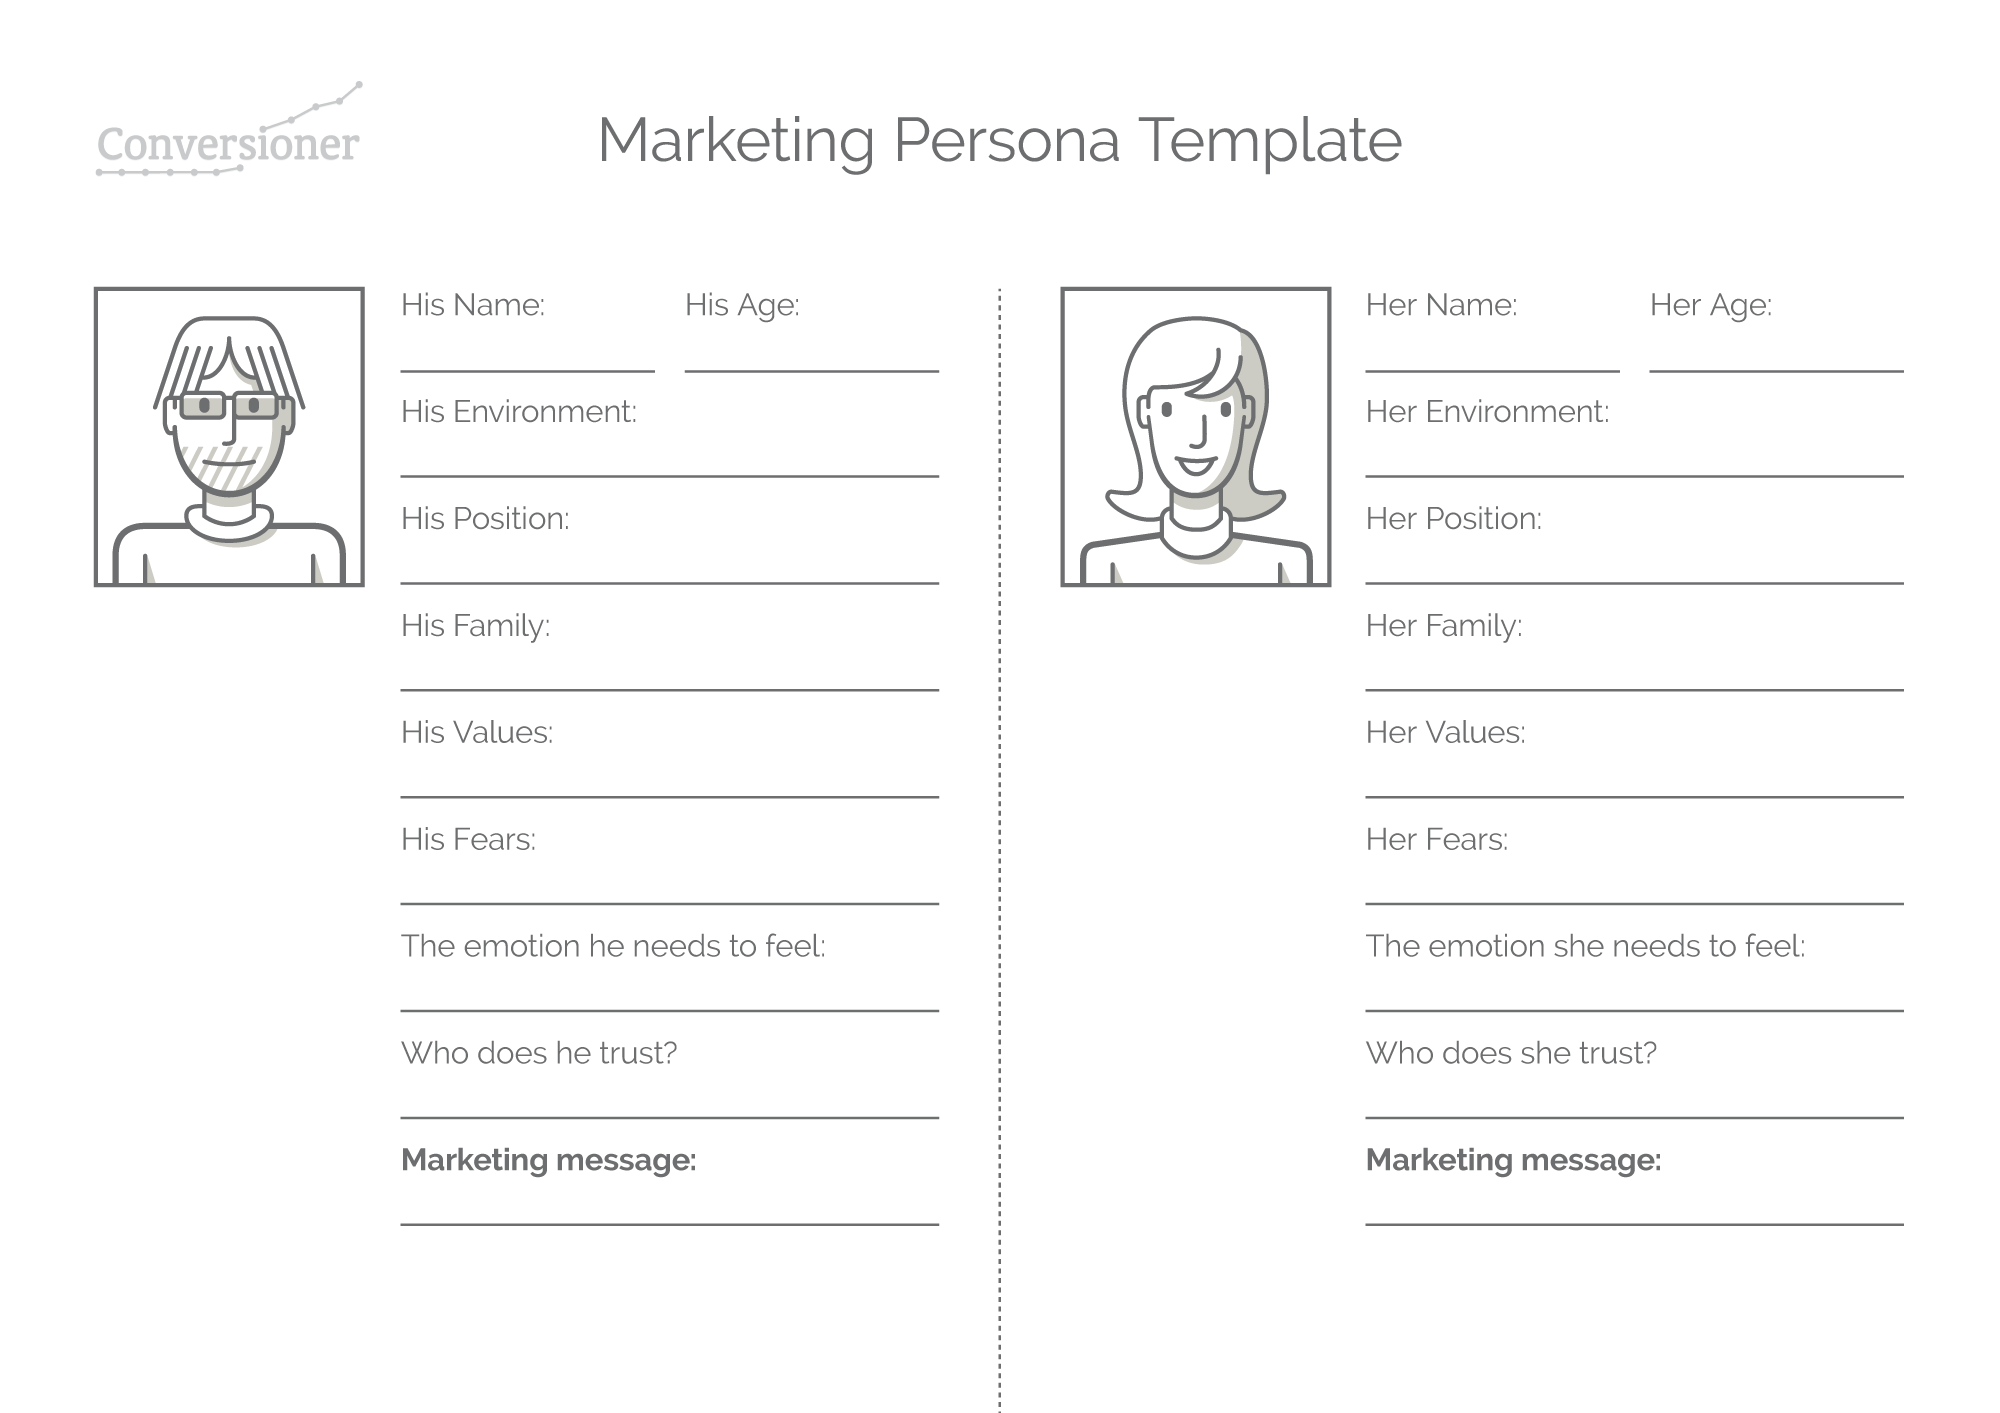 Marketing Persona Template w/ emotional targeting by Talia Wolf, Conversioner